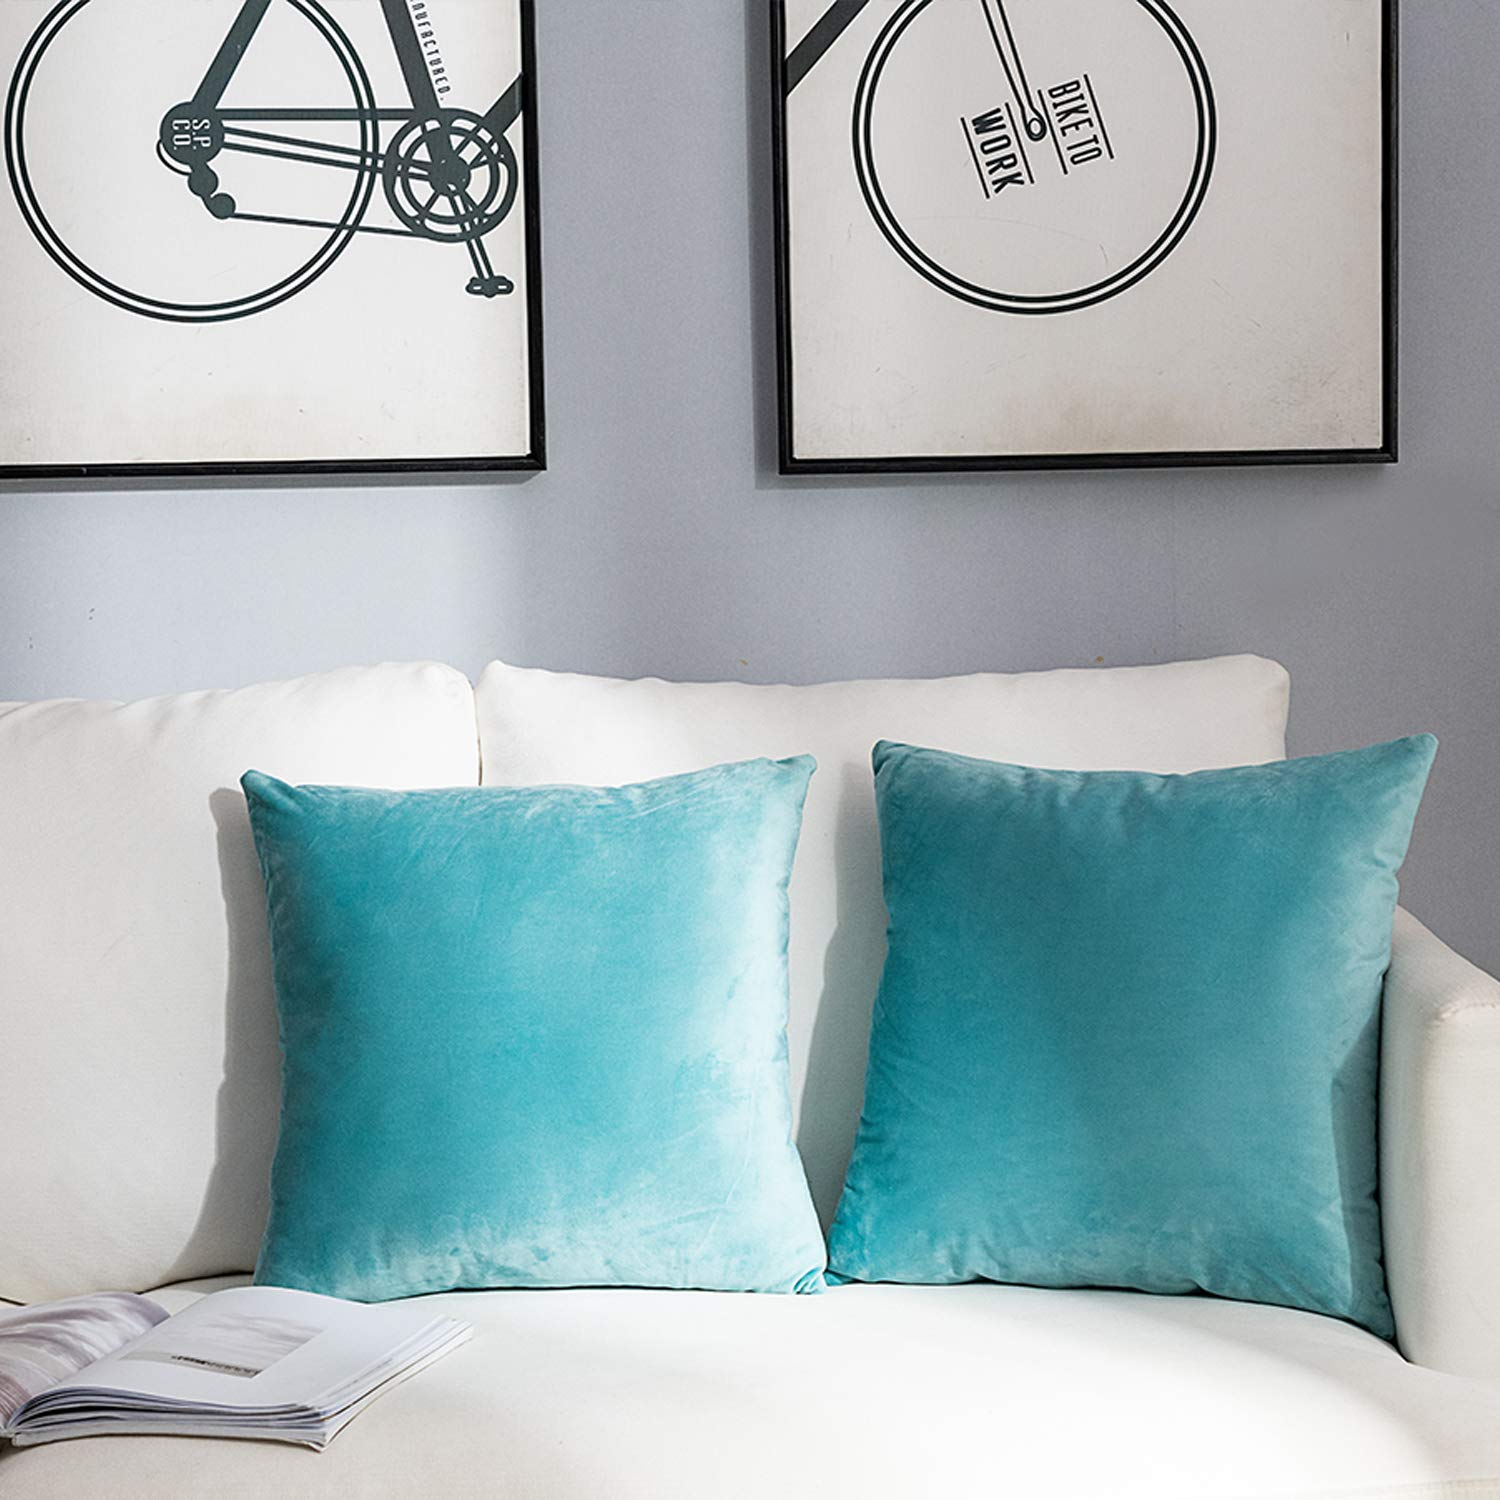 NANPIPER Set of 2 Velvet Soft Decorative Cushion Throw Pillow Covers 20x20 Inch/50x50 cm Cozy Solid Velvet Square Pillowcase Cushion Covers Cyan for Couch and Bed